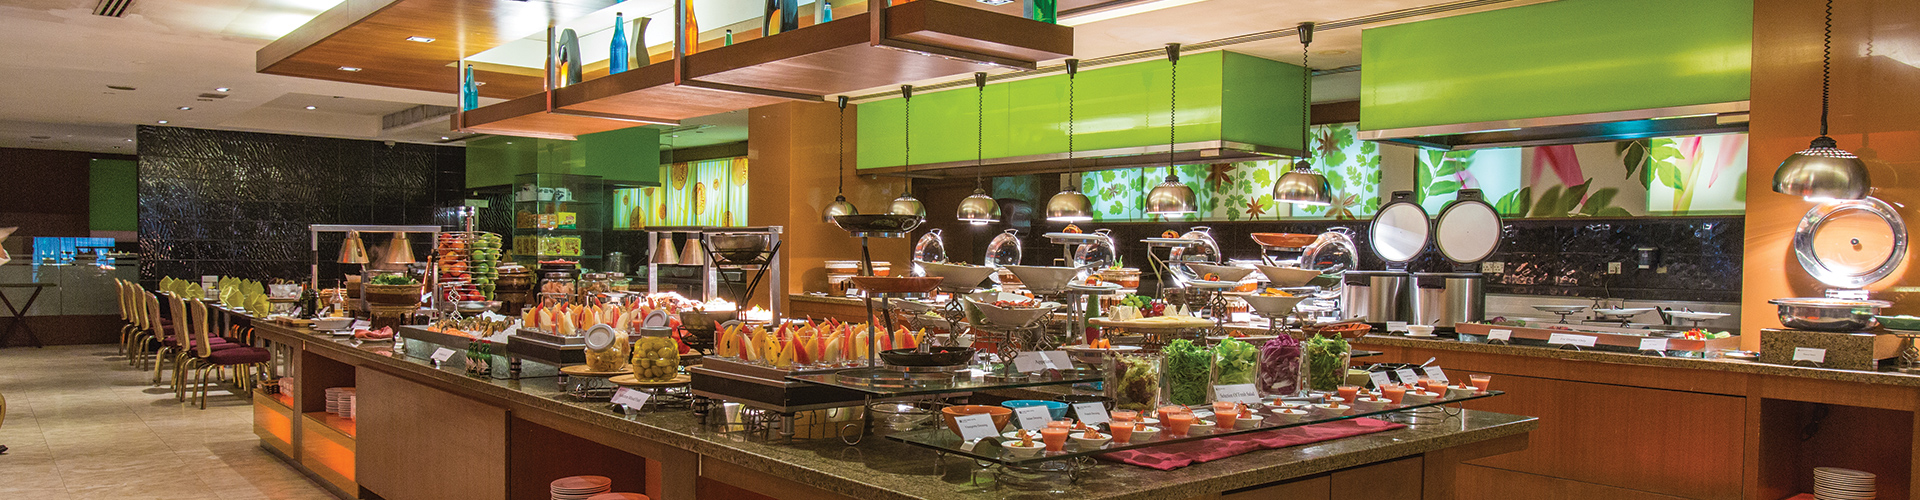 View the latest HomeTown Buffet prices for the entire menu including breakfast, lunch, and dinner buffets, Military Monday, and family night buffets.